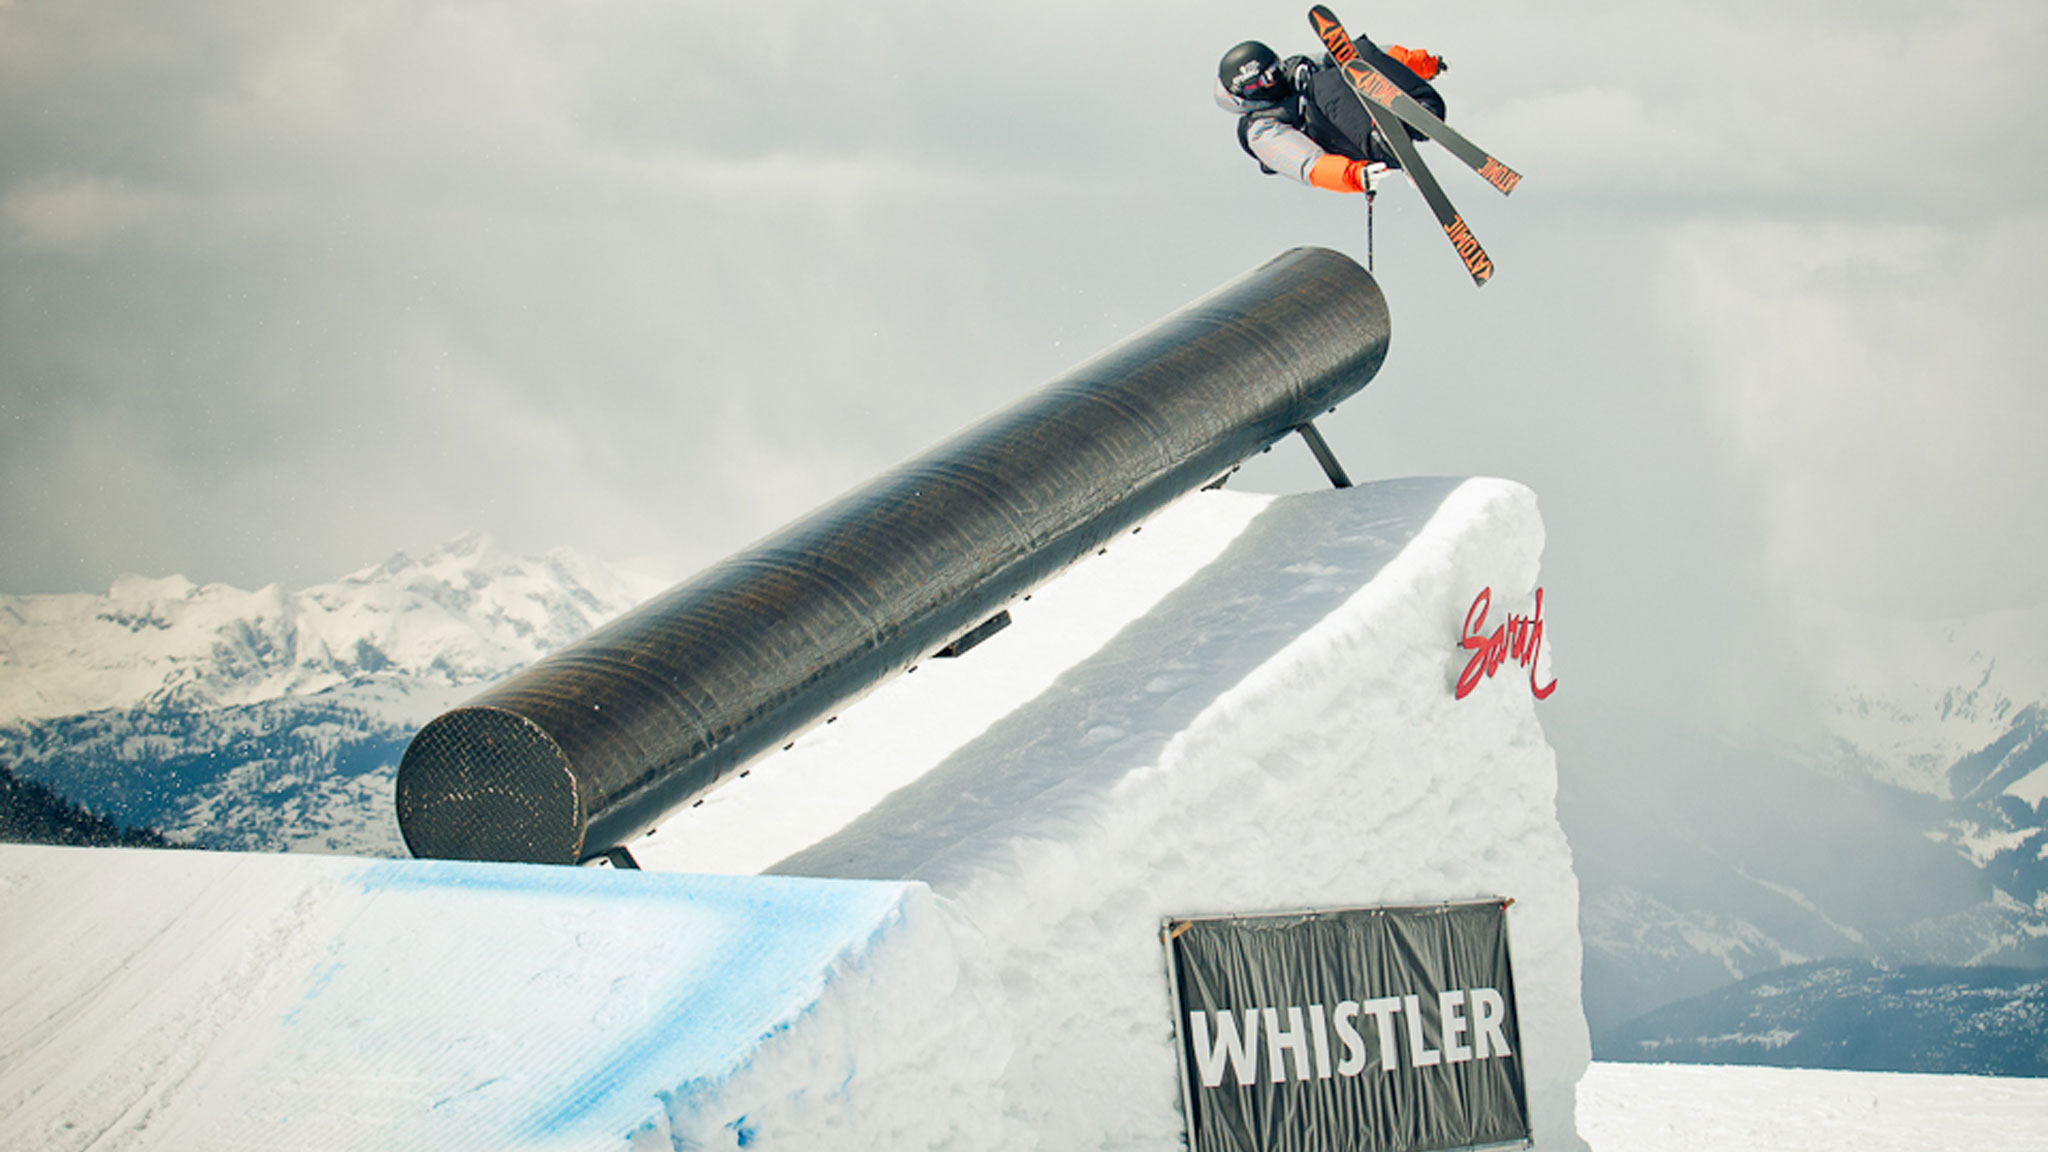 Gus Kenworthy competing at Whistler last weekend en route to his third AFP overall title.